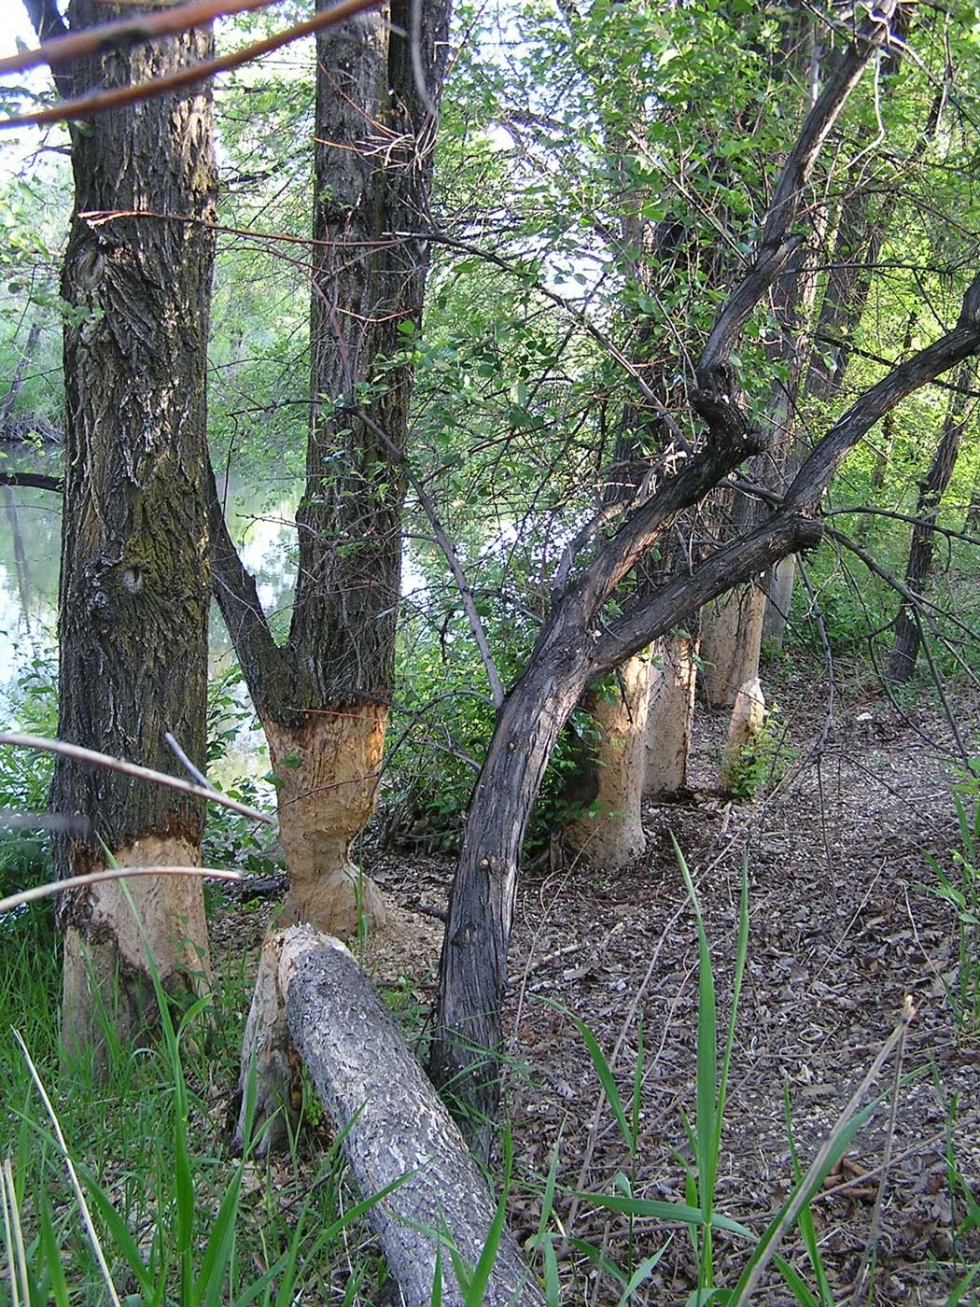 Beavers of the Jordan River